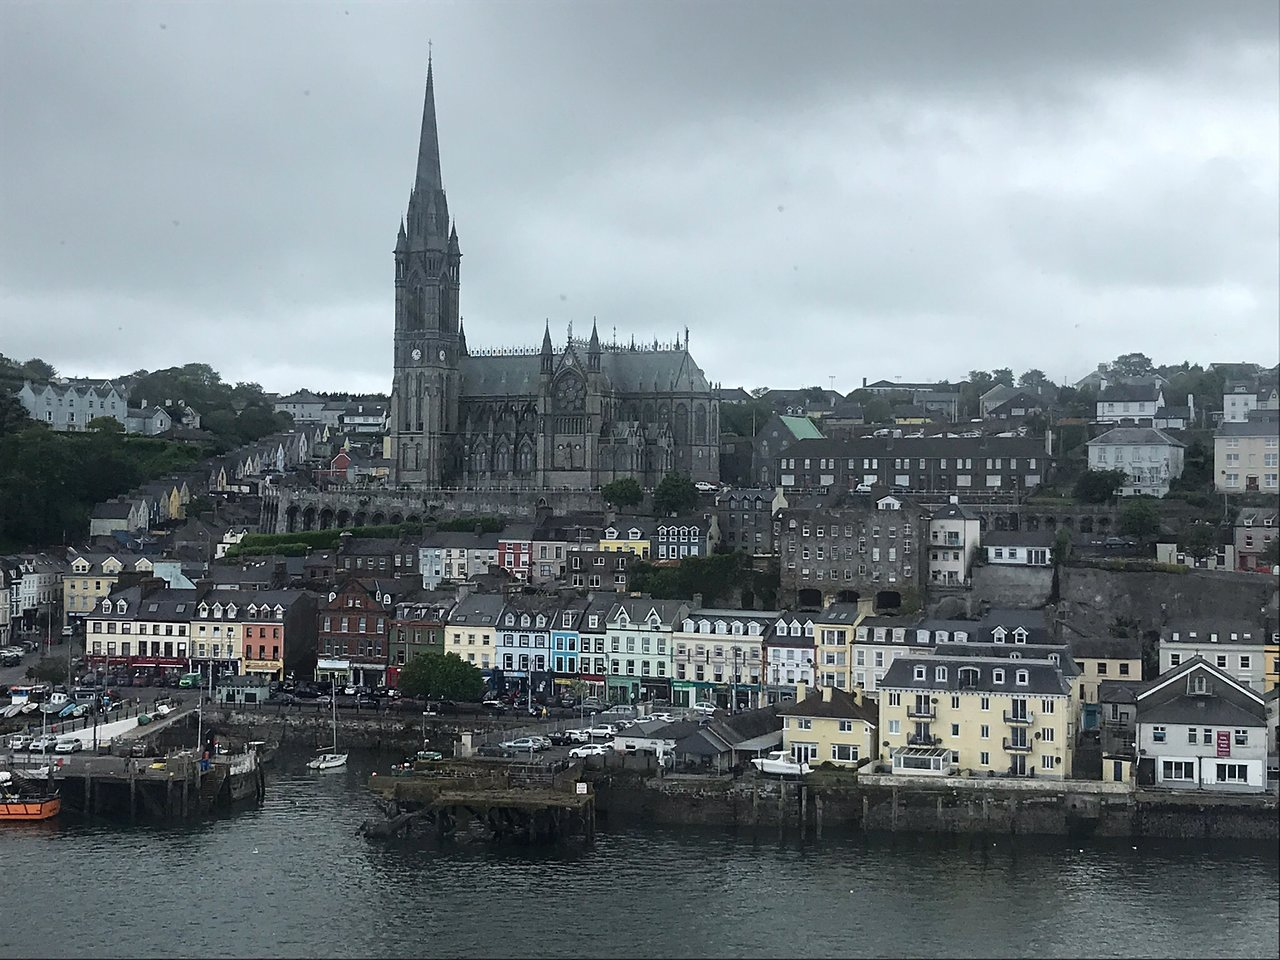 Date With Girls in Cobh (Ireland) - kurikku.co.uk